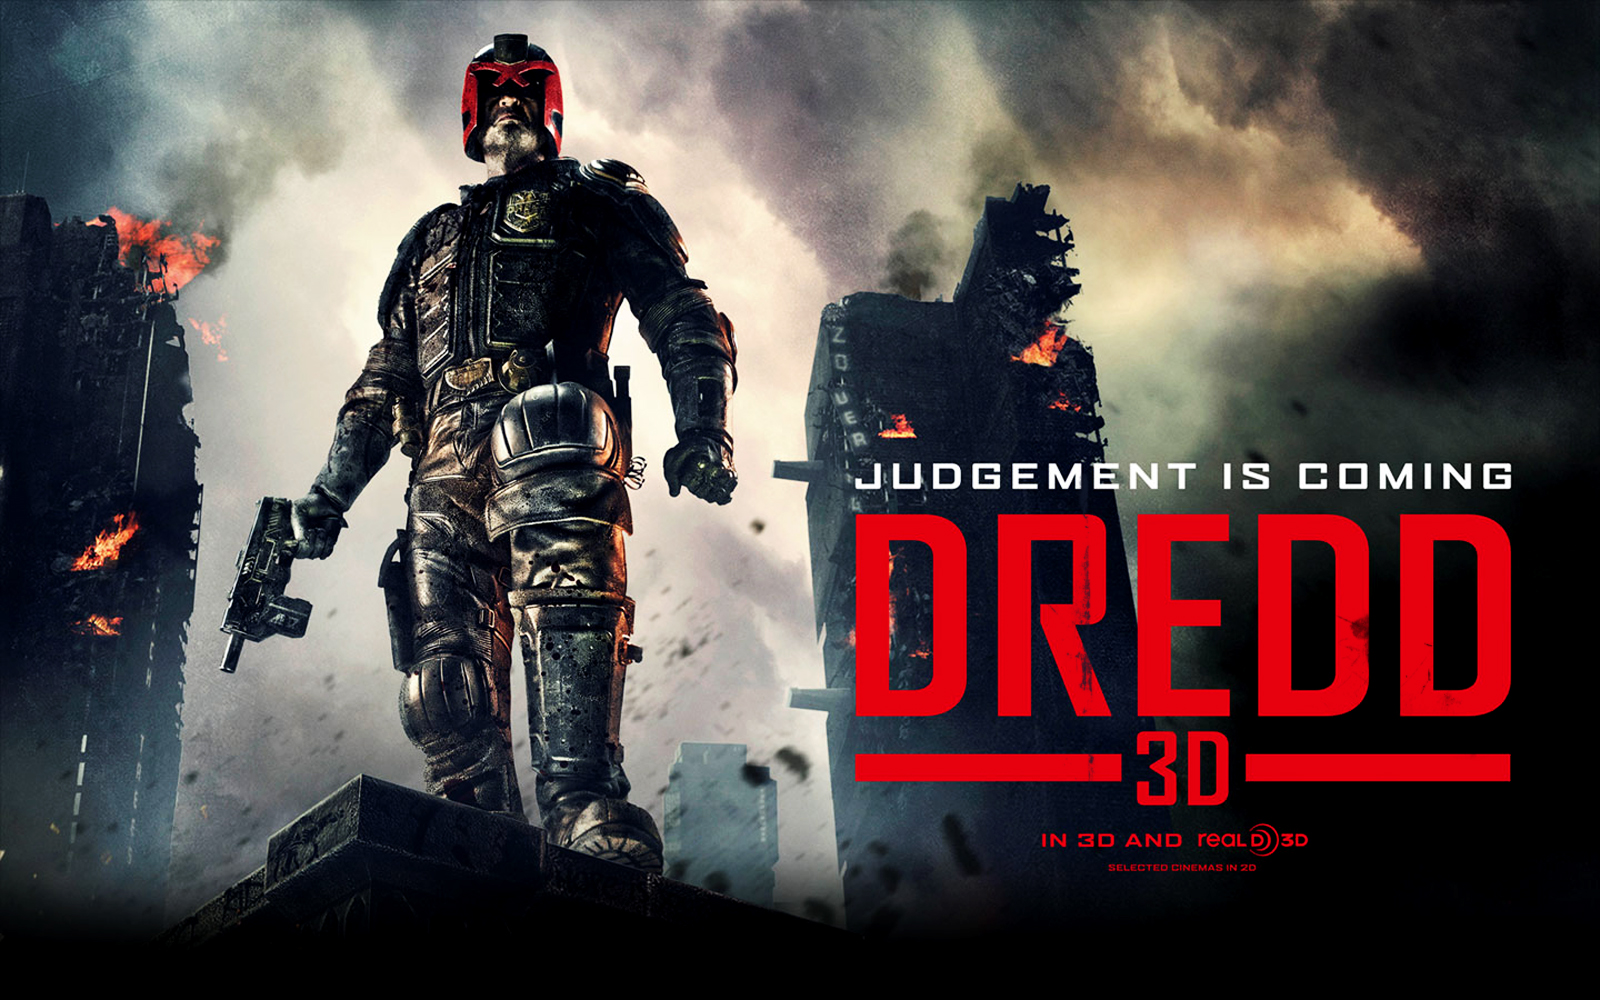 Dredd 3D Movie Poster HD WallpapersImage to Wallpaper 1600x1000